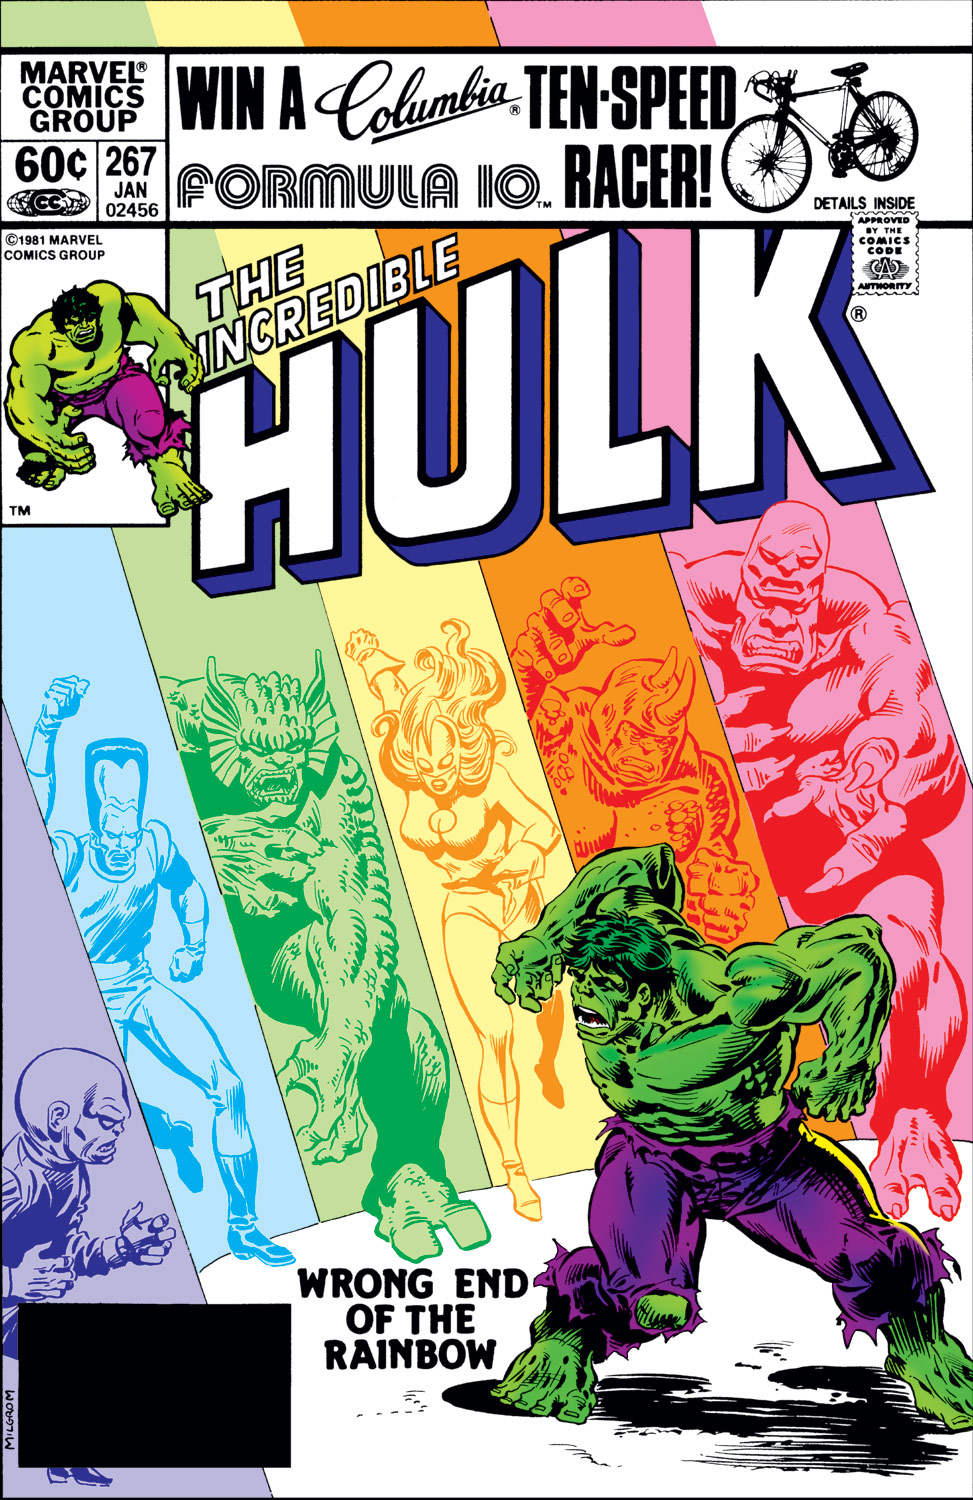 Incredible Hulk (1962) #267